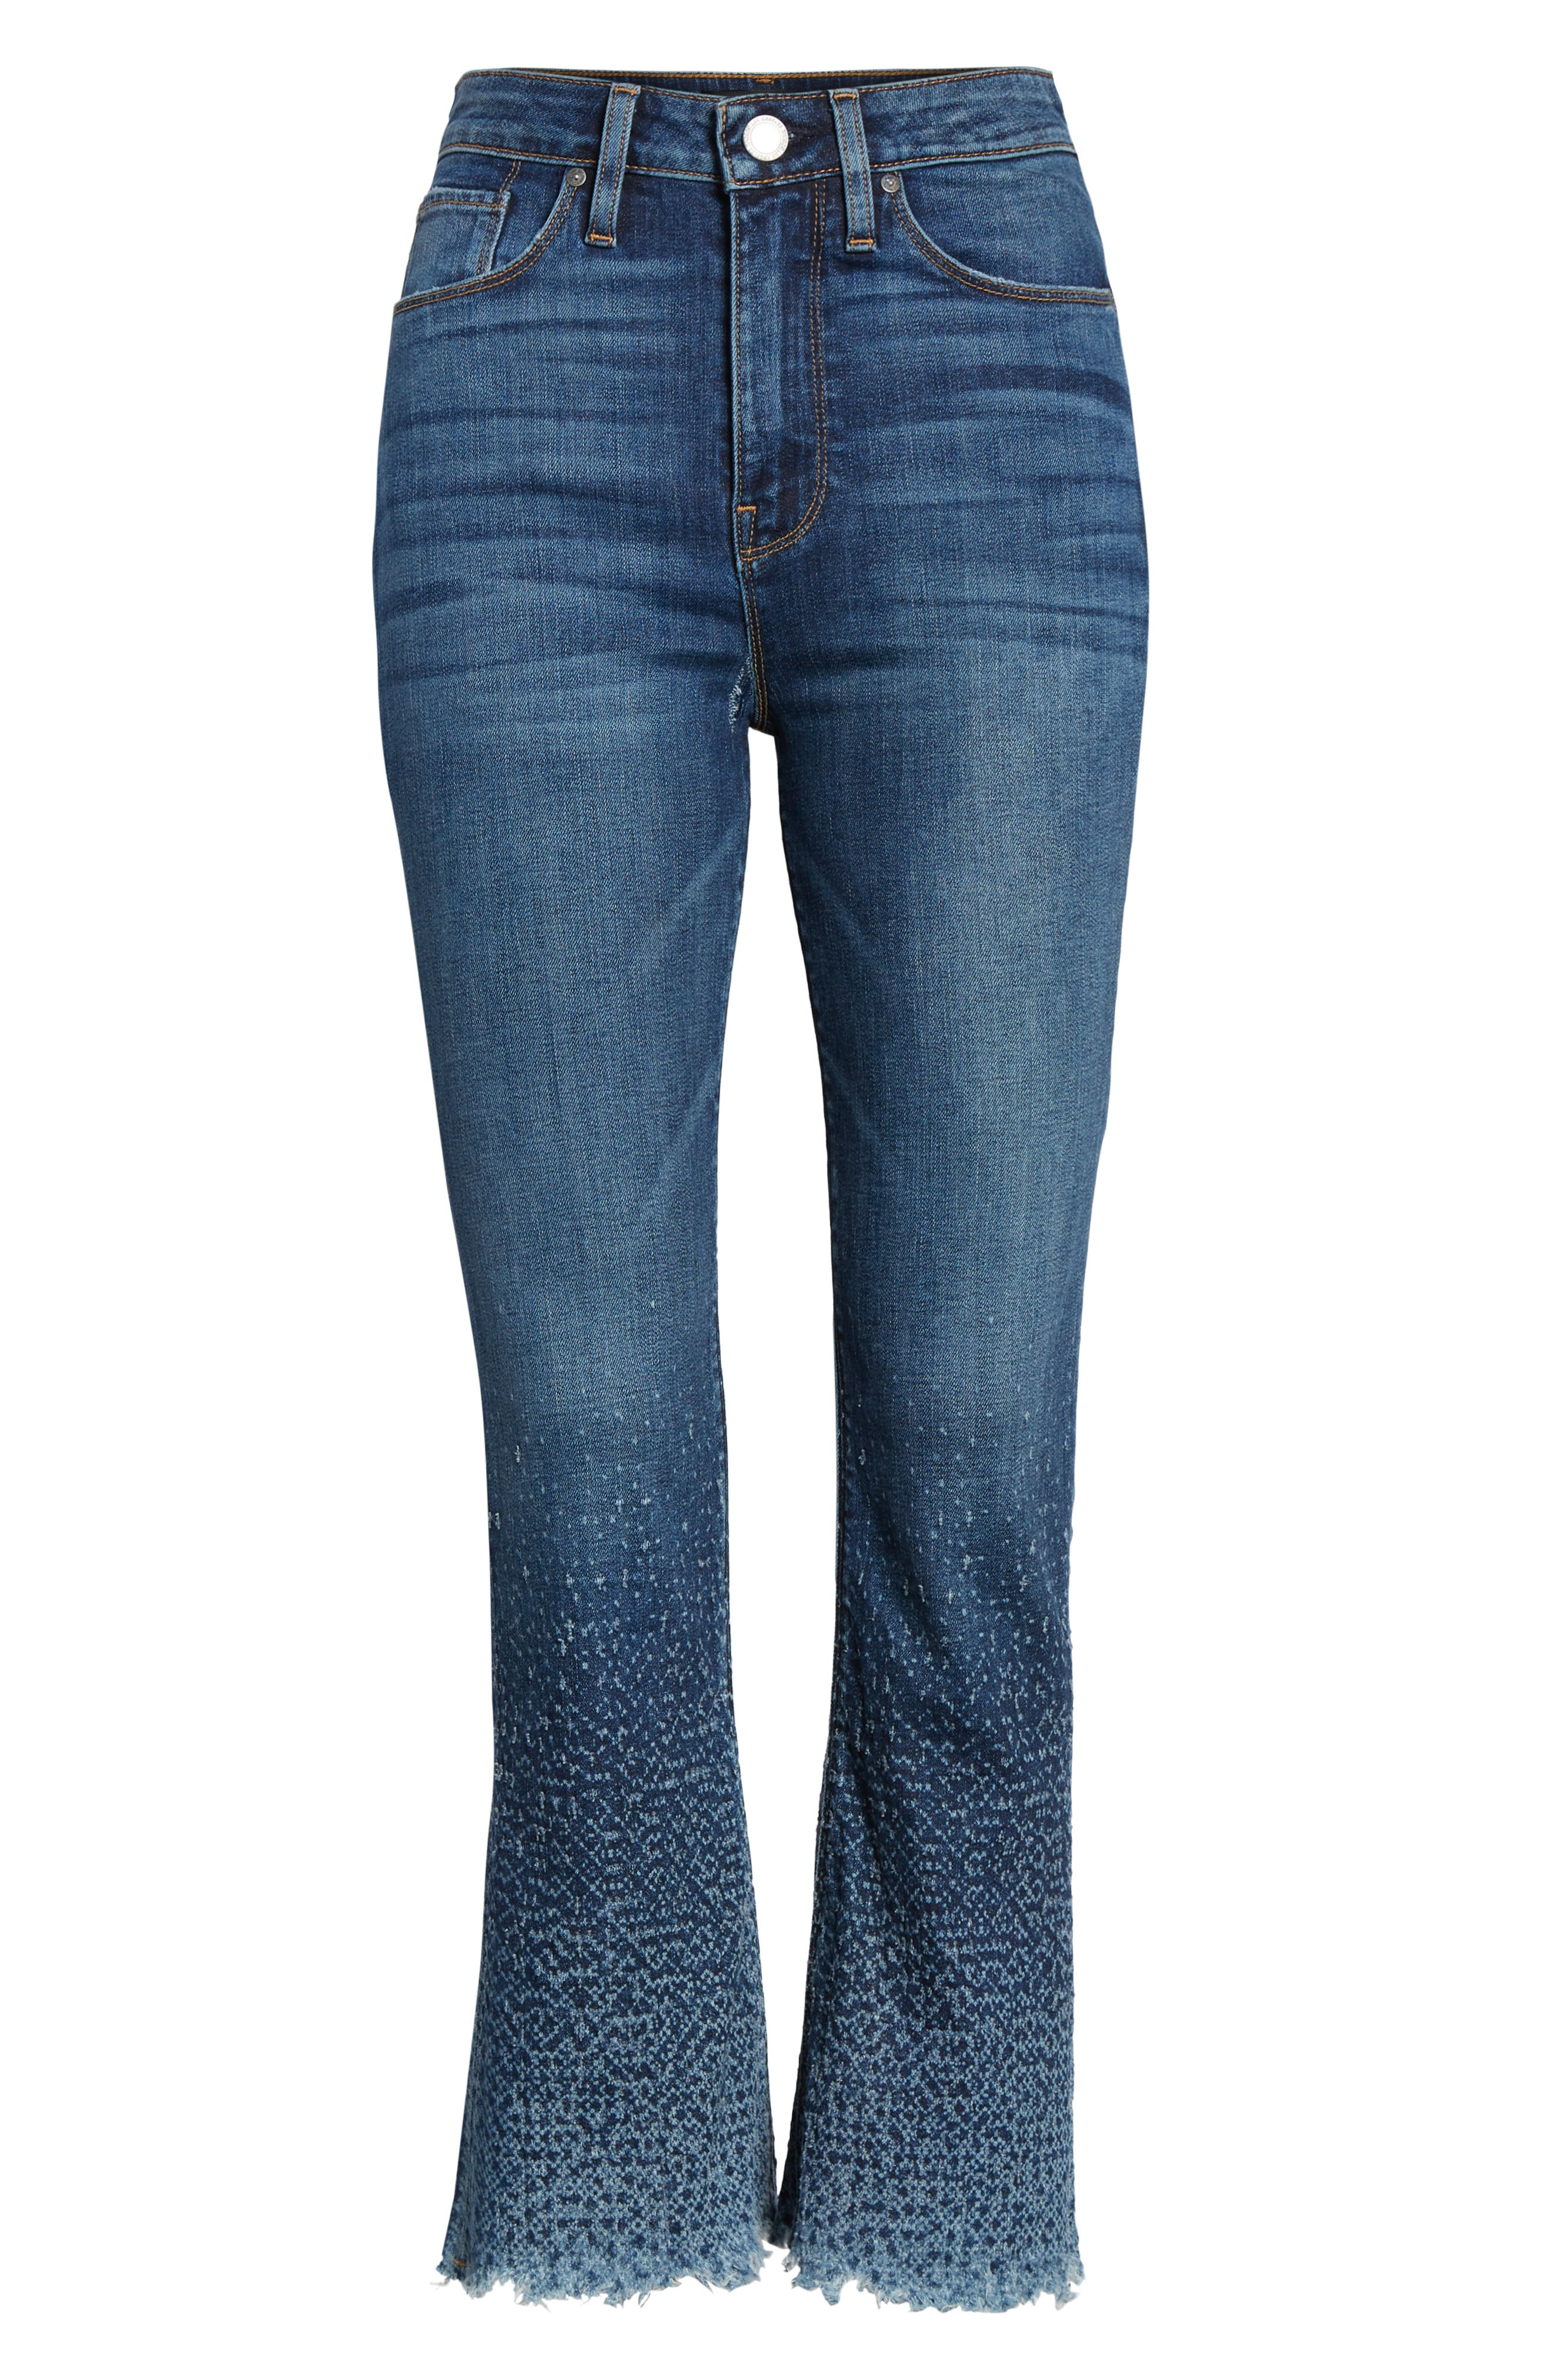 HUDSON JEANS, Holly High Waist Crop Flare Jeans, Alternate thumbnail 6, color, 420